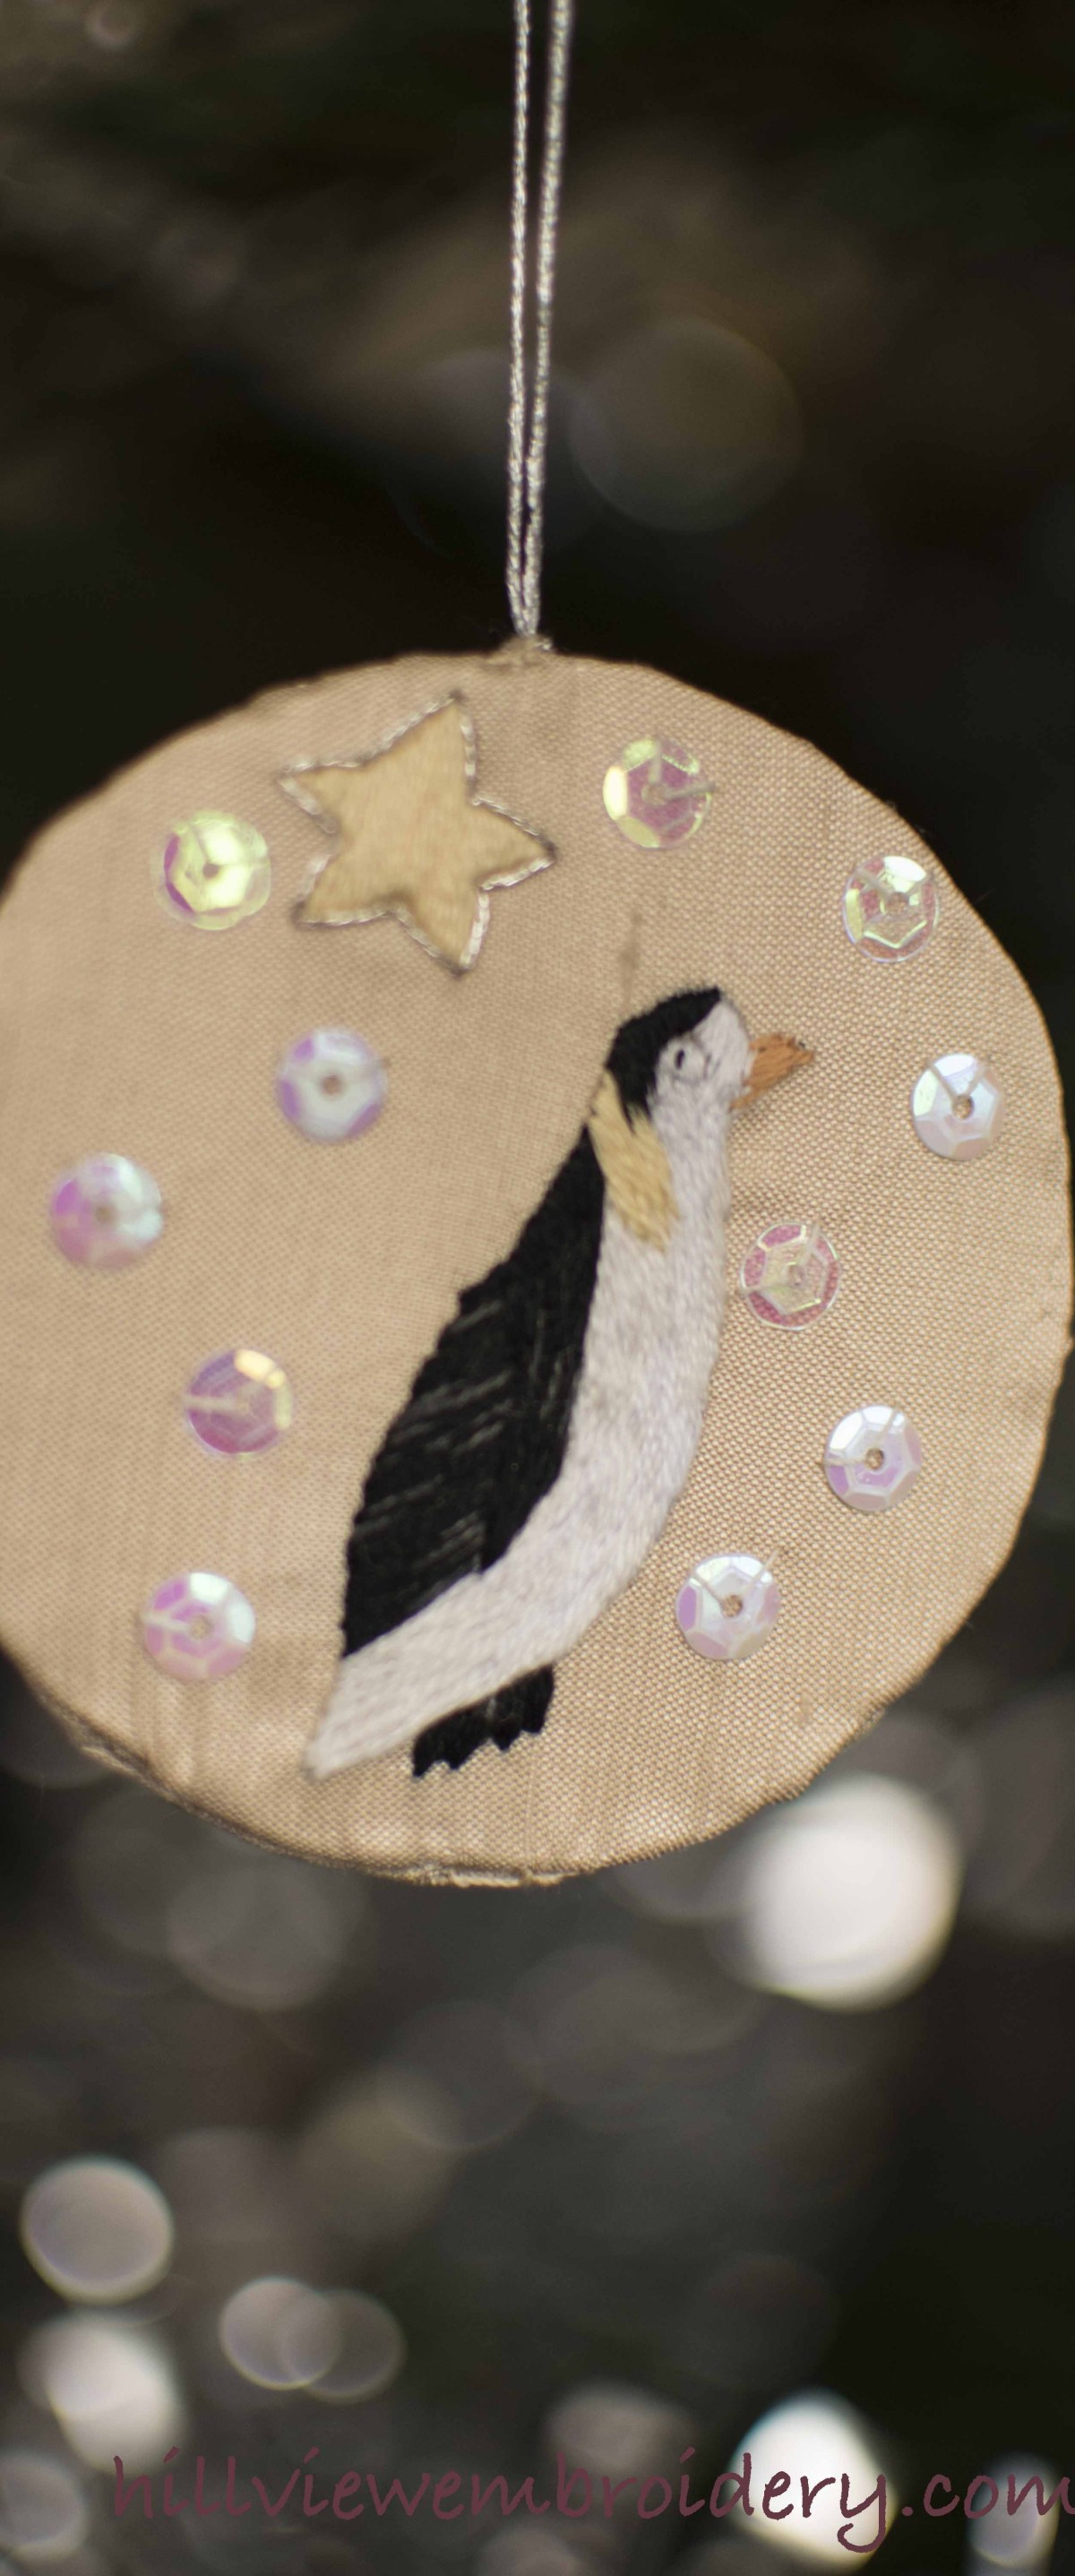 hand embroidered Christmas penguin ornament, designed and stitched by Catherine Patterson